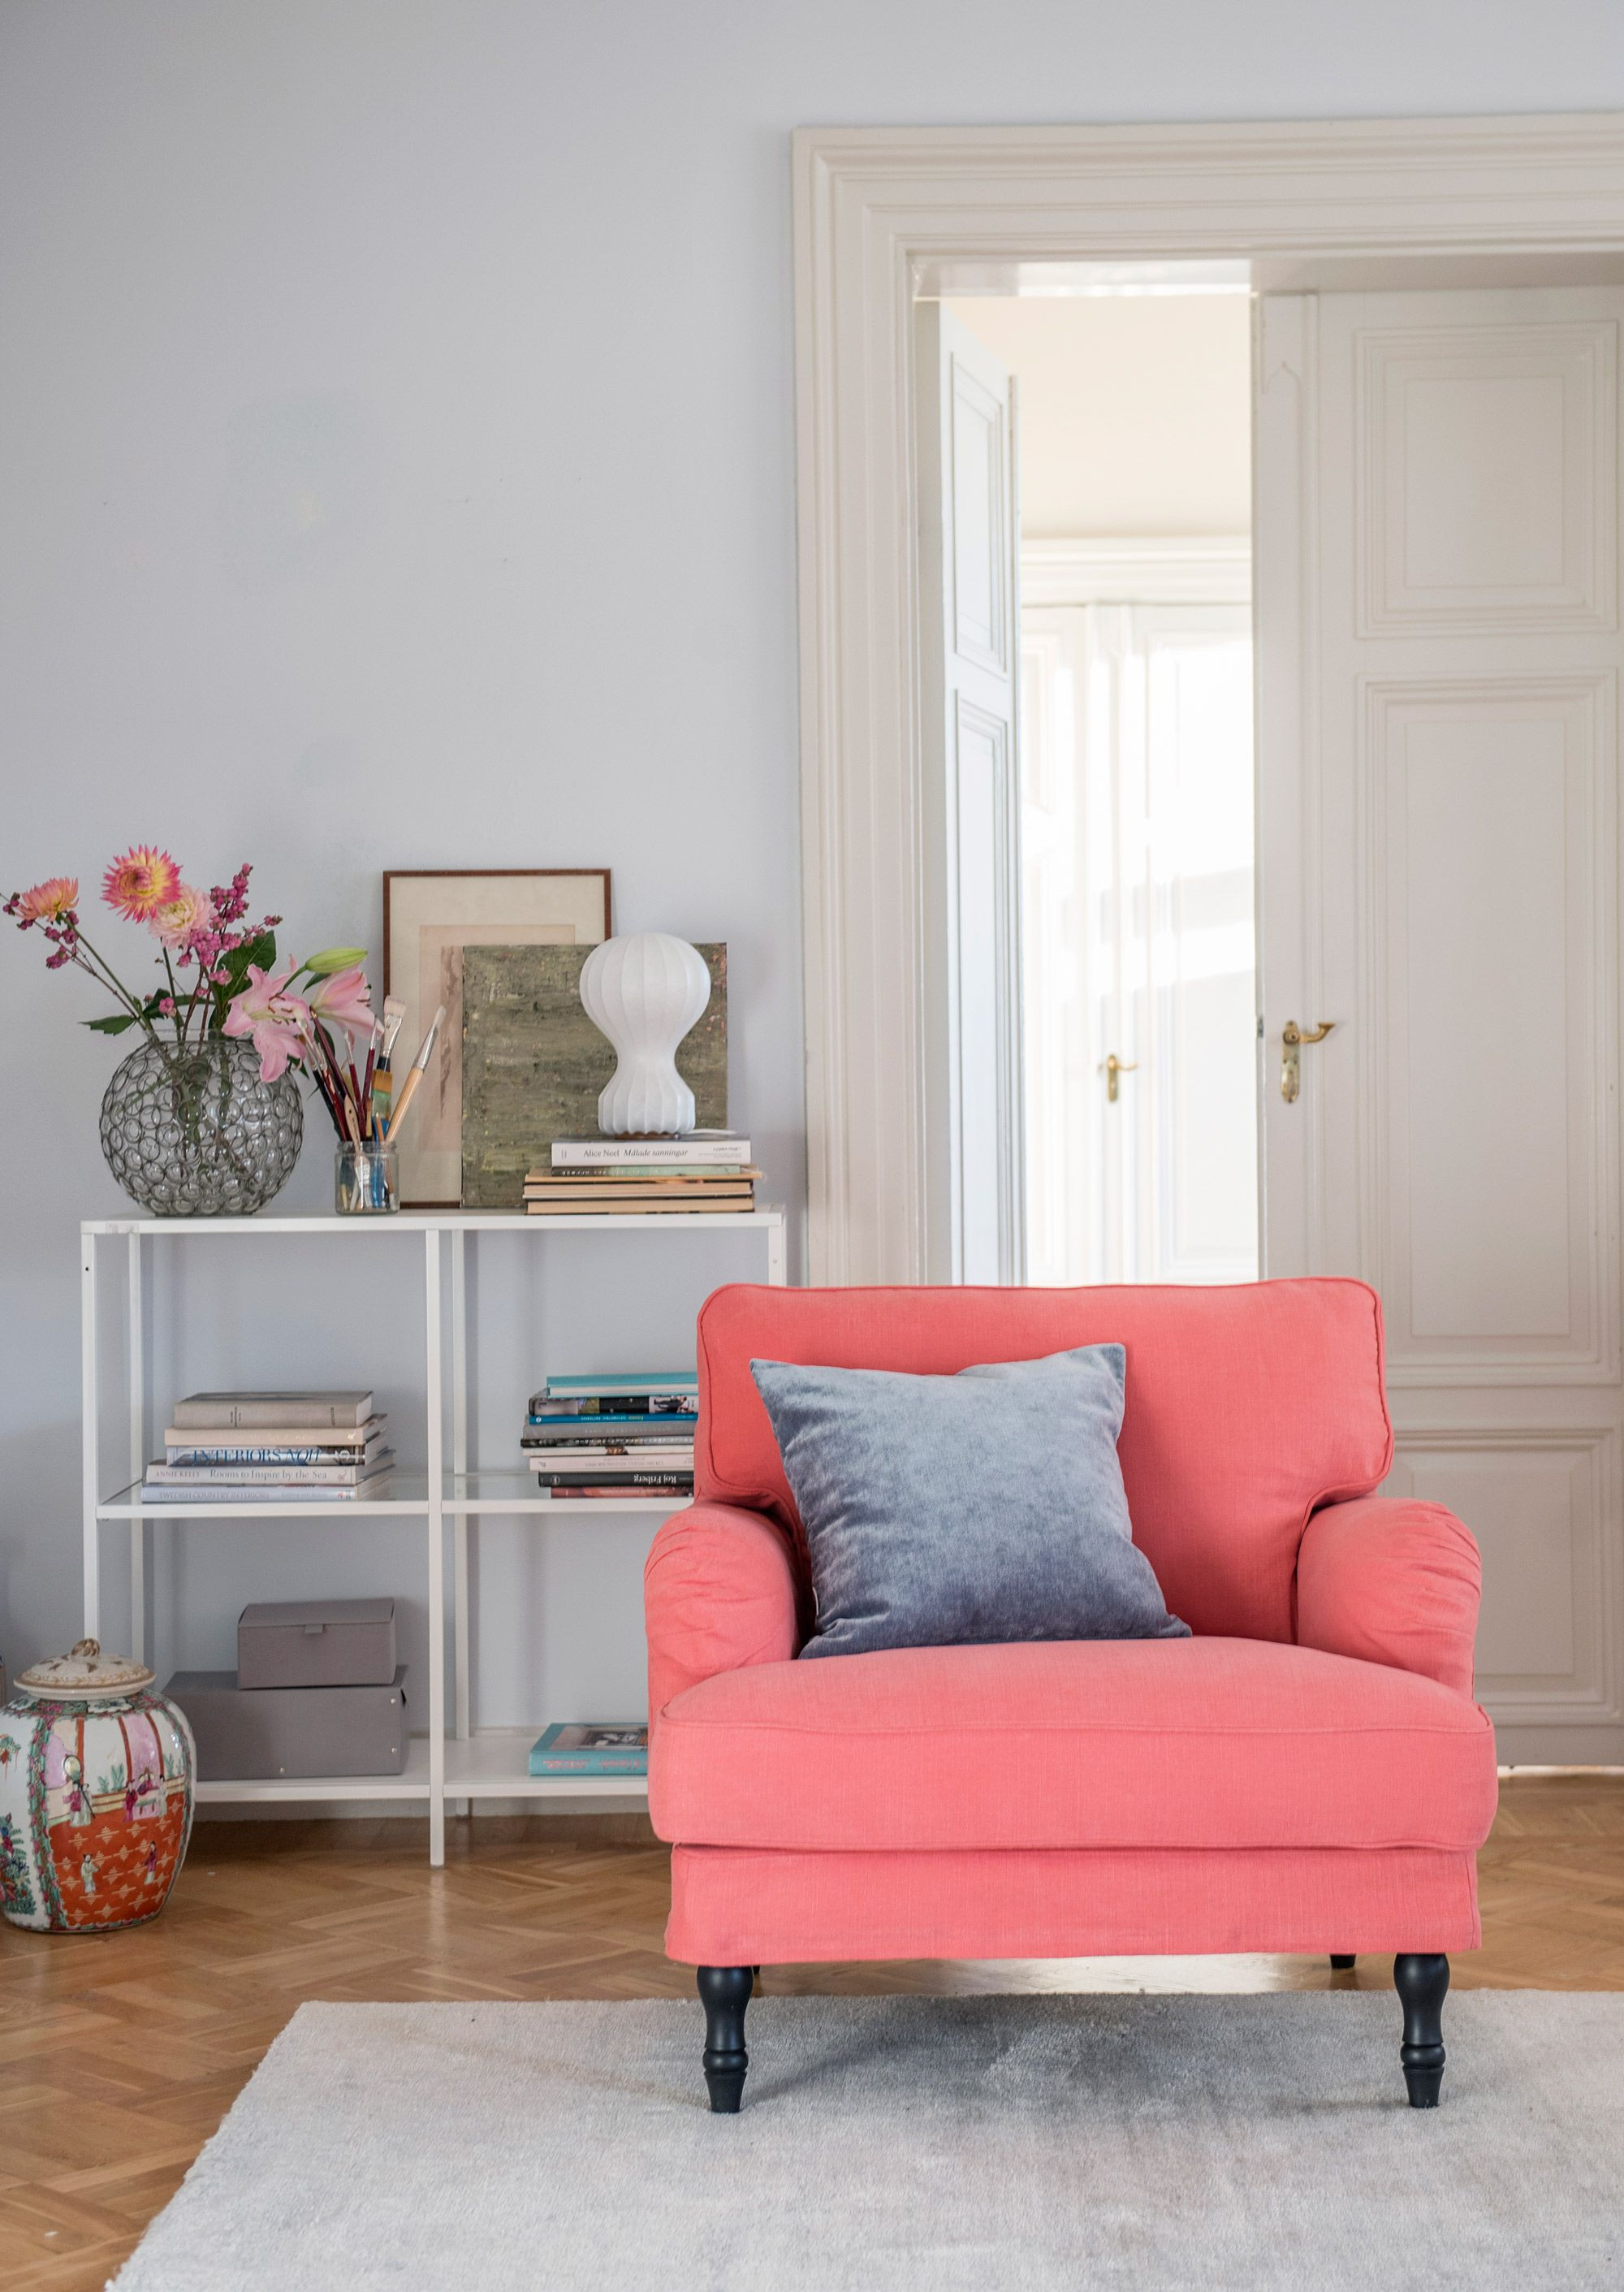 ikea stocksund chair covers wedding reception chairs armchair cover we love coral red with a velvet cushion pomela peach skin romo x bemz designers guild